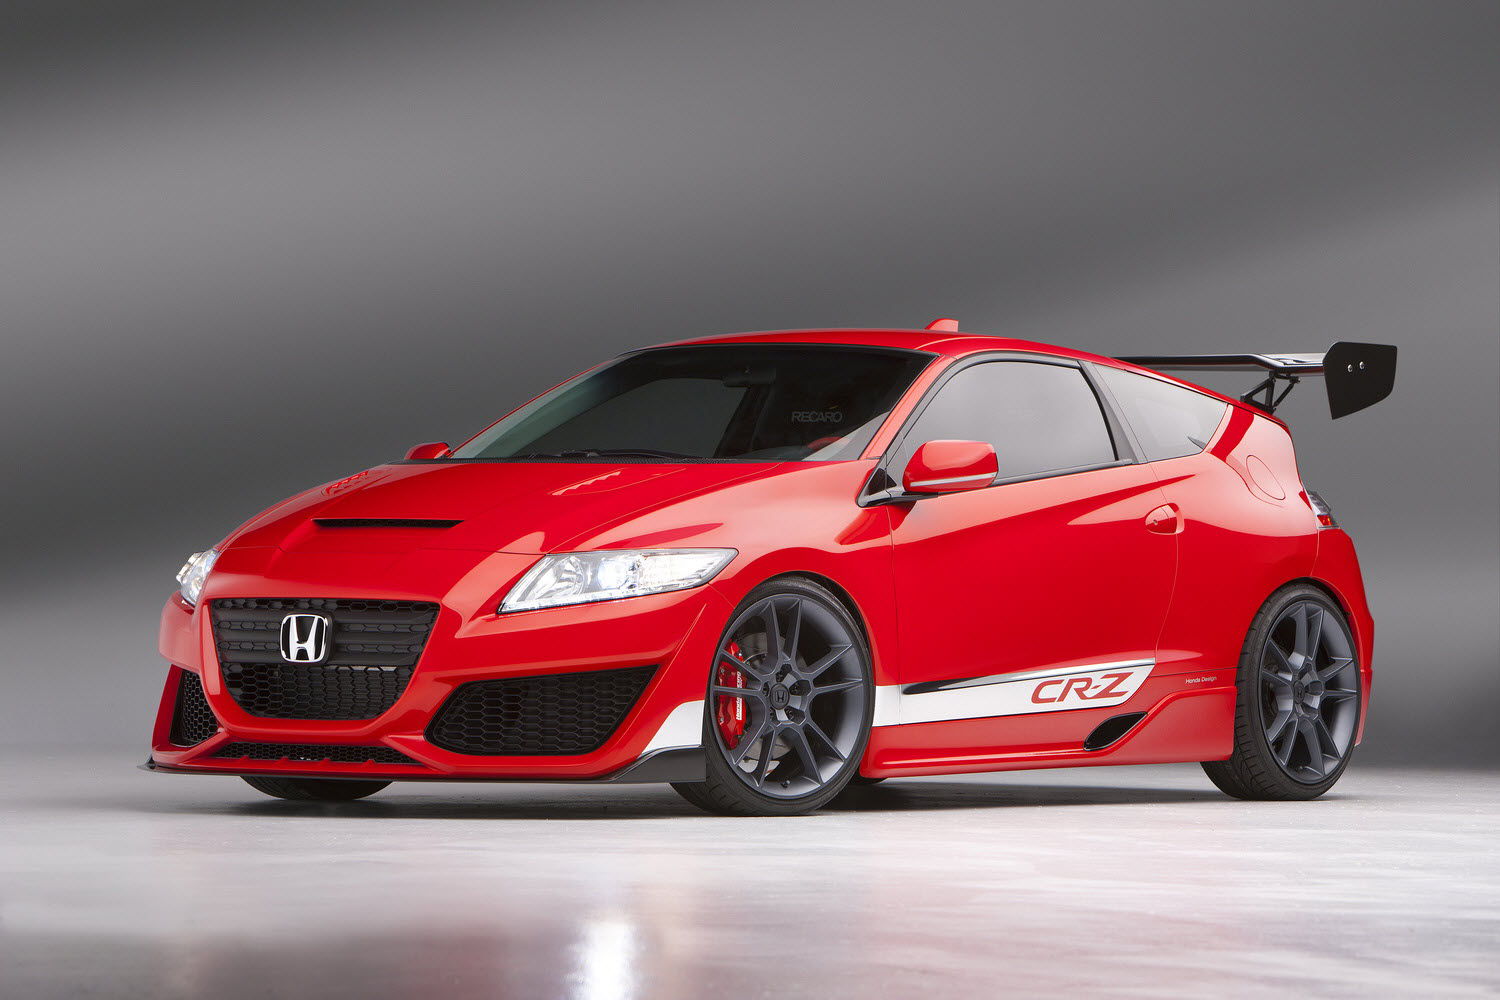 honda cr z sport hybrid 2011 breaking news cars. Black Bedroom Furniture Sets. Home Design Ideas